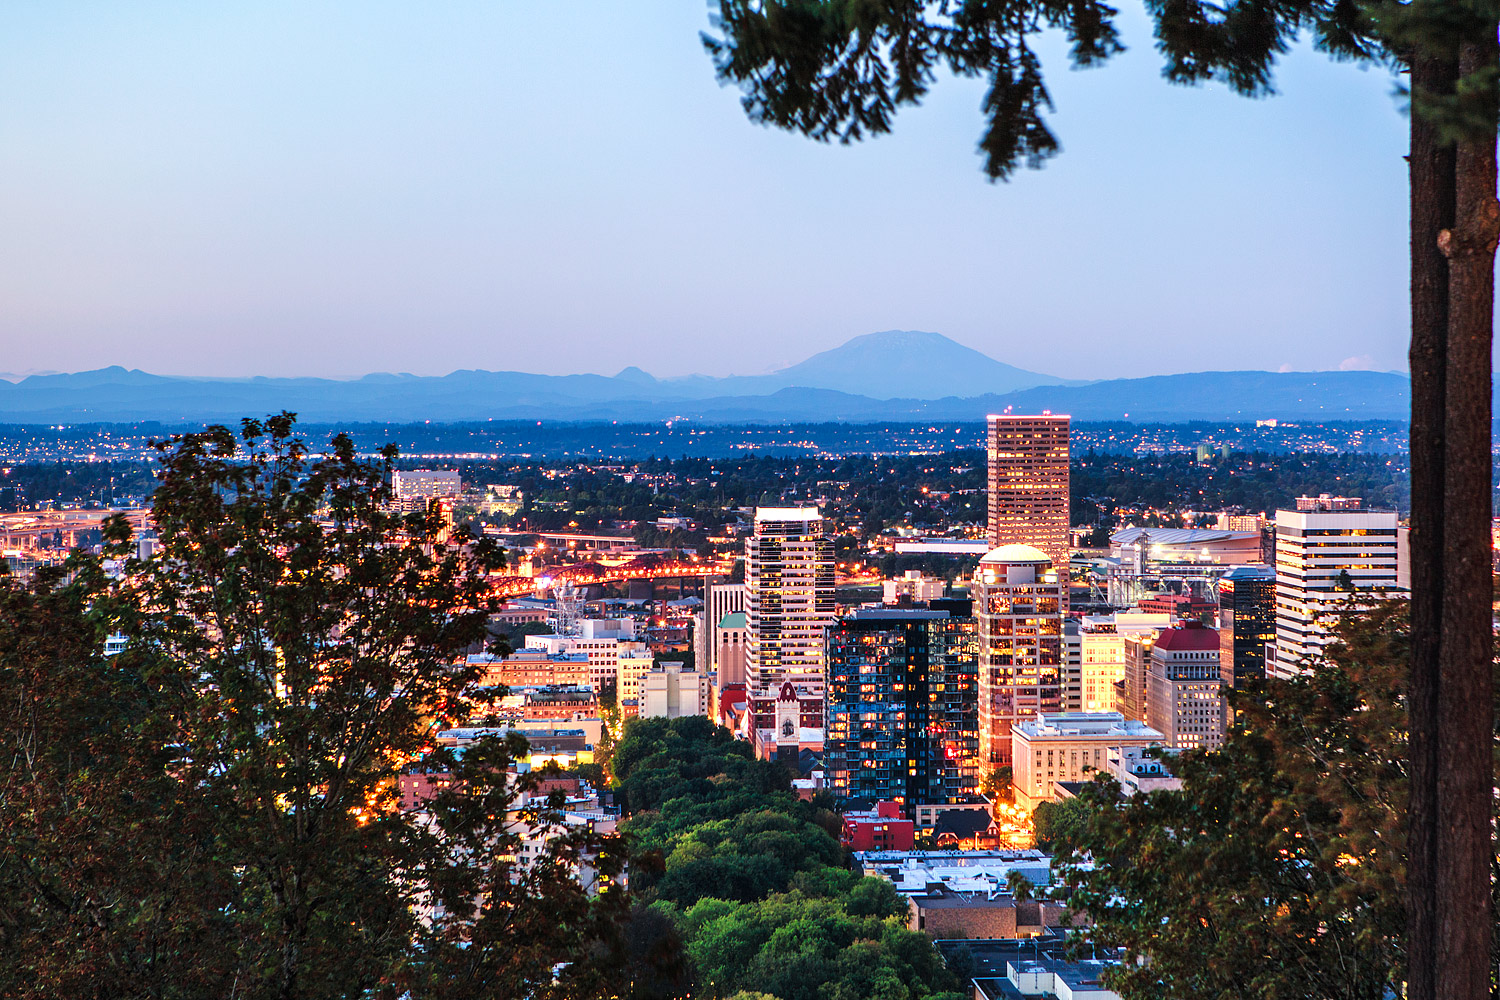 Mount St Helen's behind downtown Portland at sunset